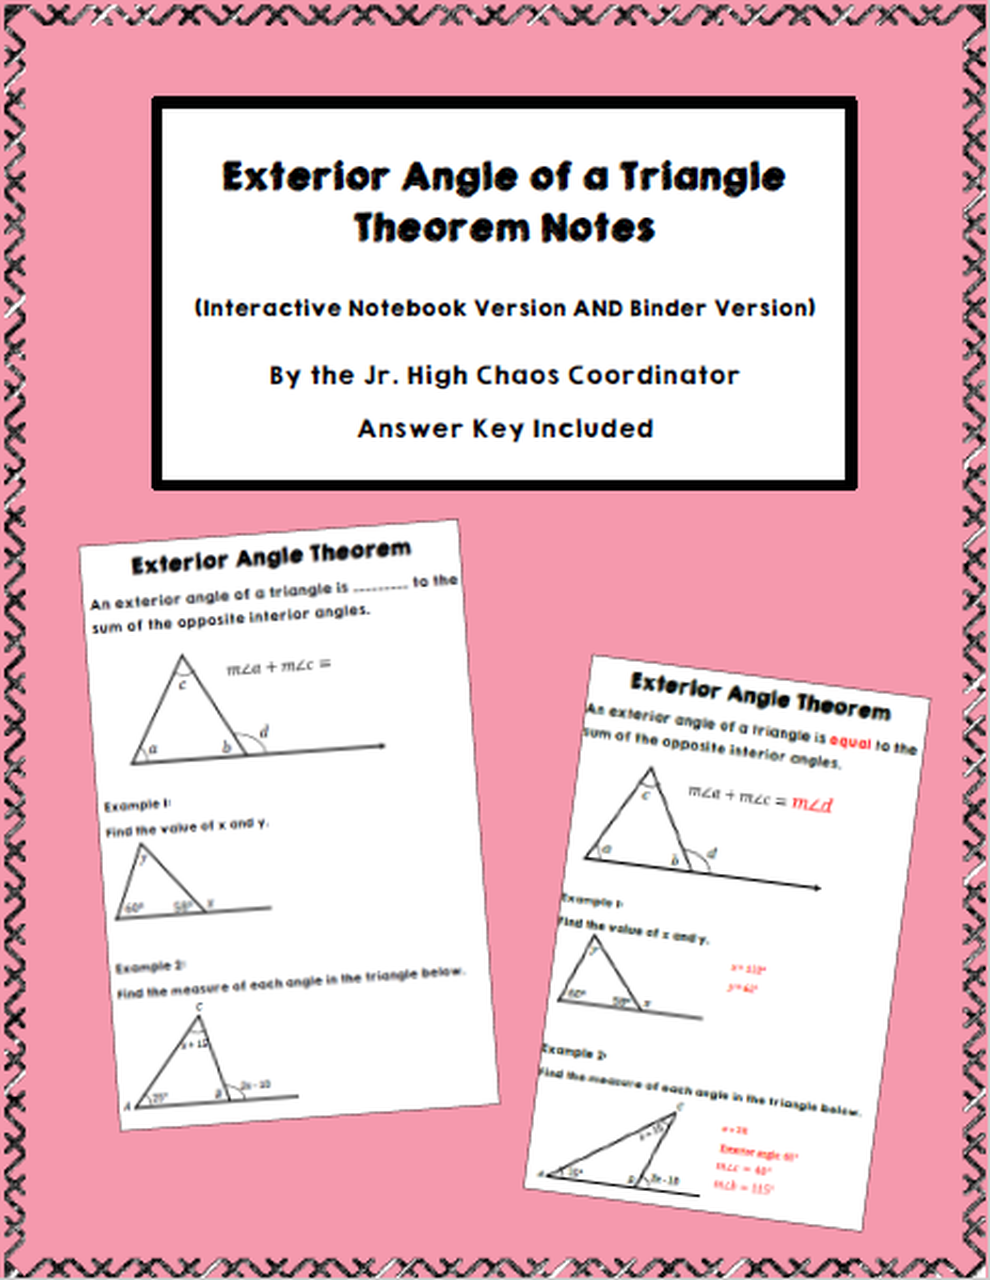 38 Middle School Junior High Math Activities And Lessons Ideas In 2021 Junior High Math Math Activities Math